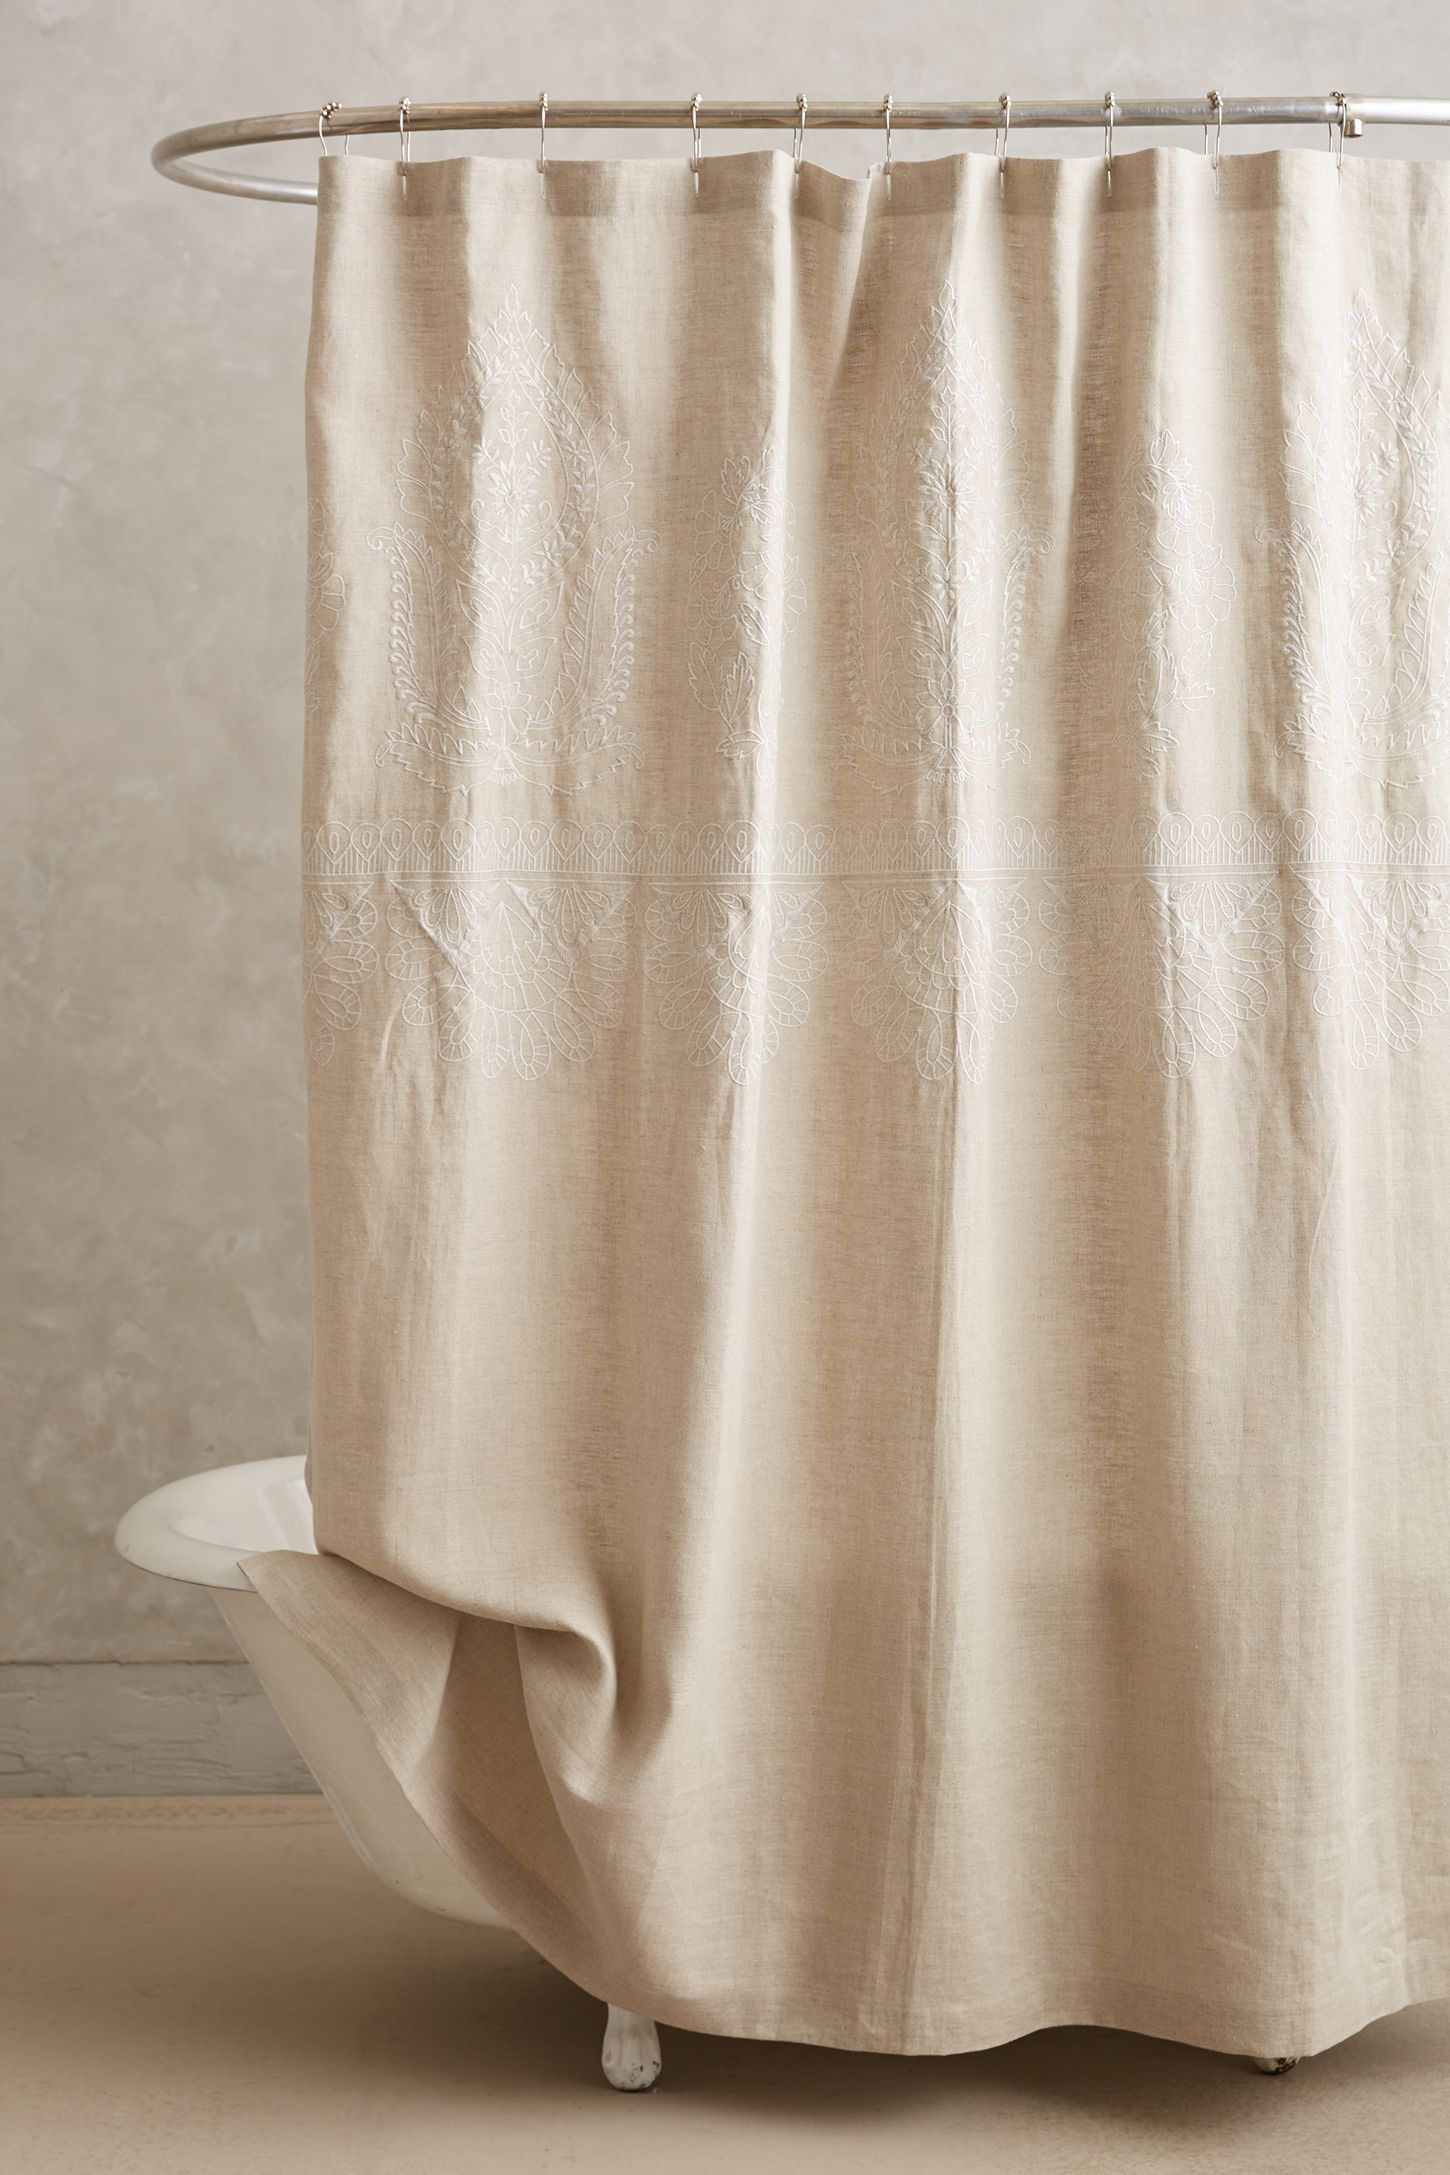 Embroidered Linen Shower Curtain Anthropologie